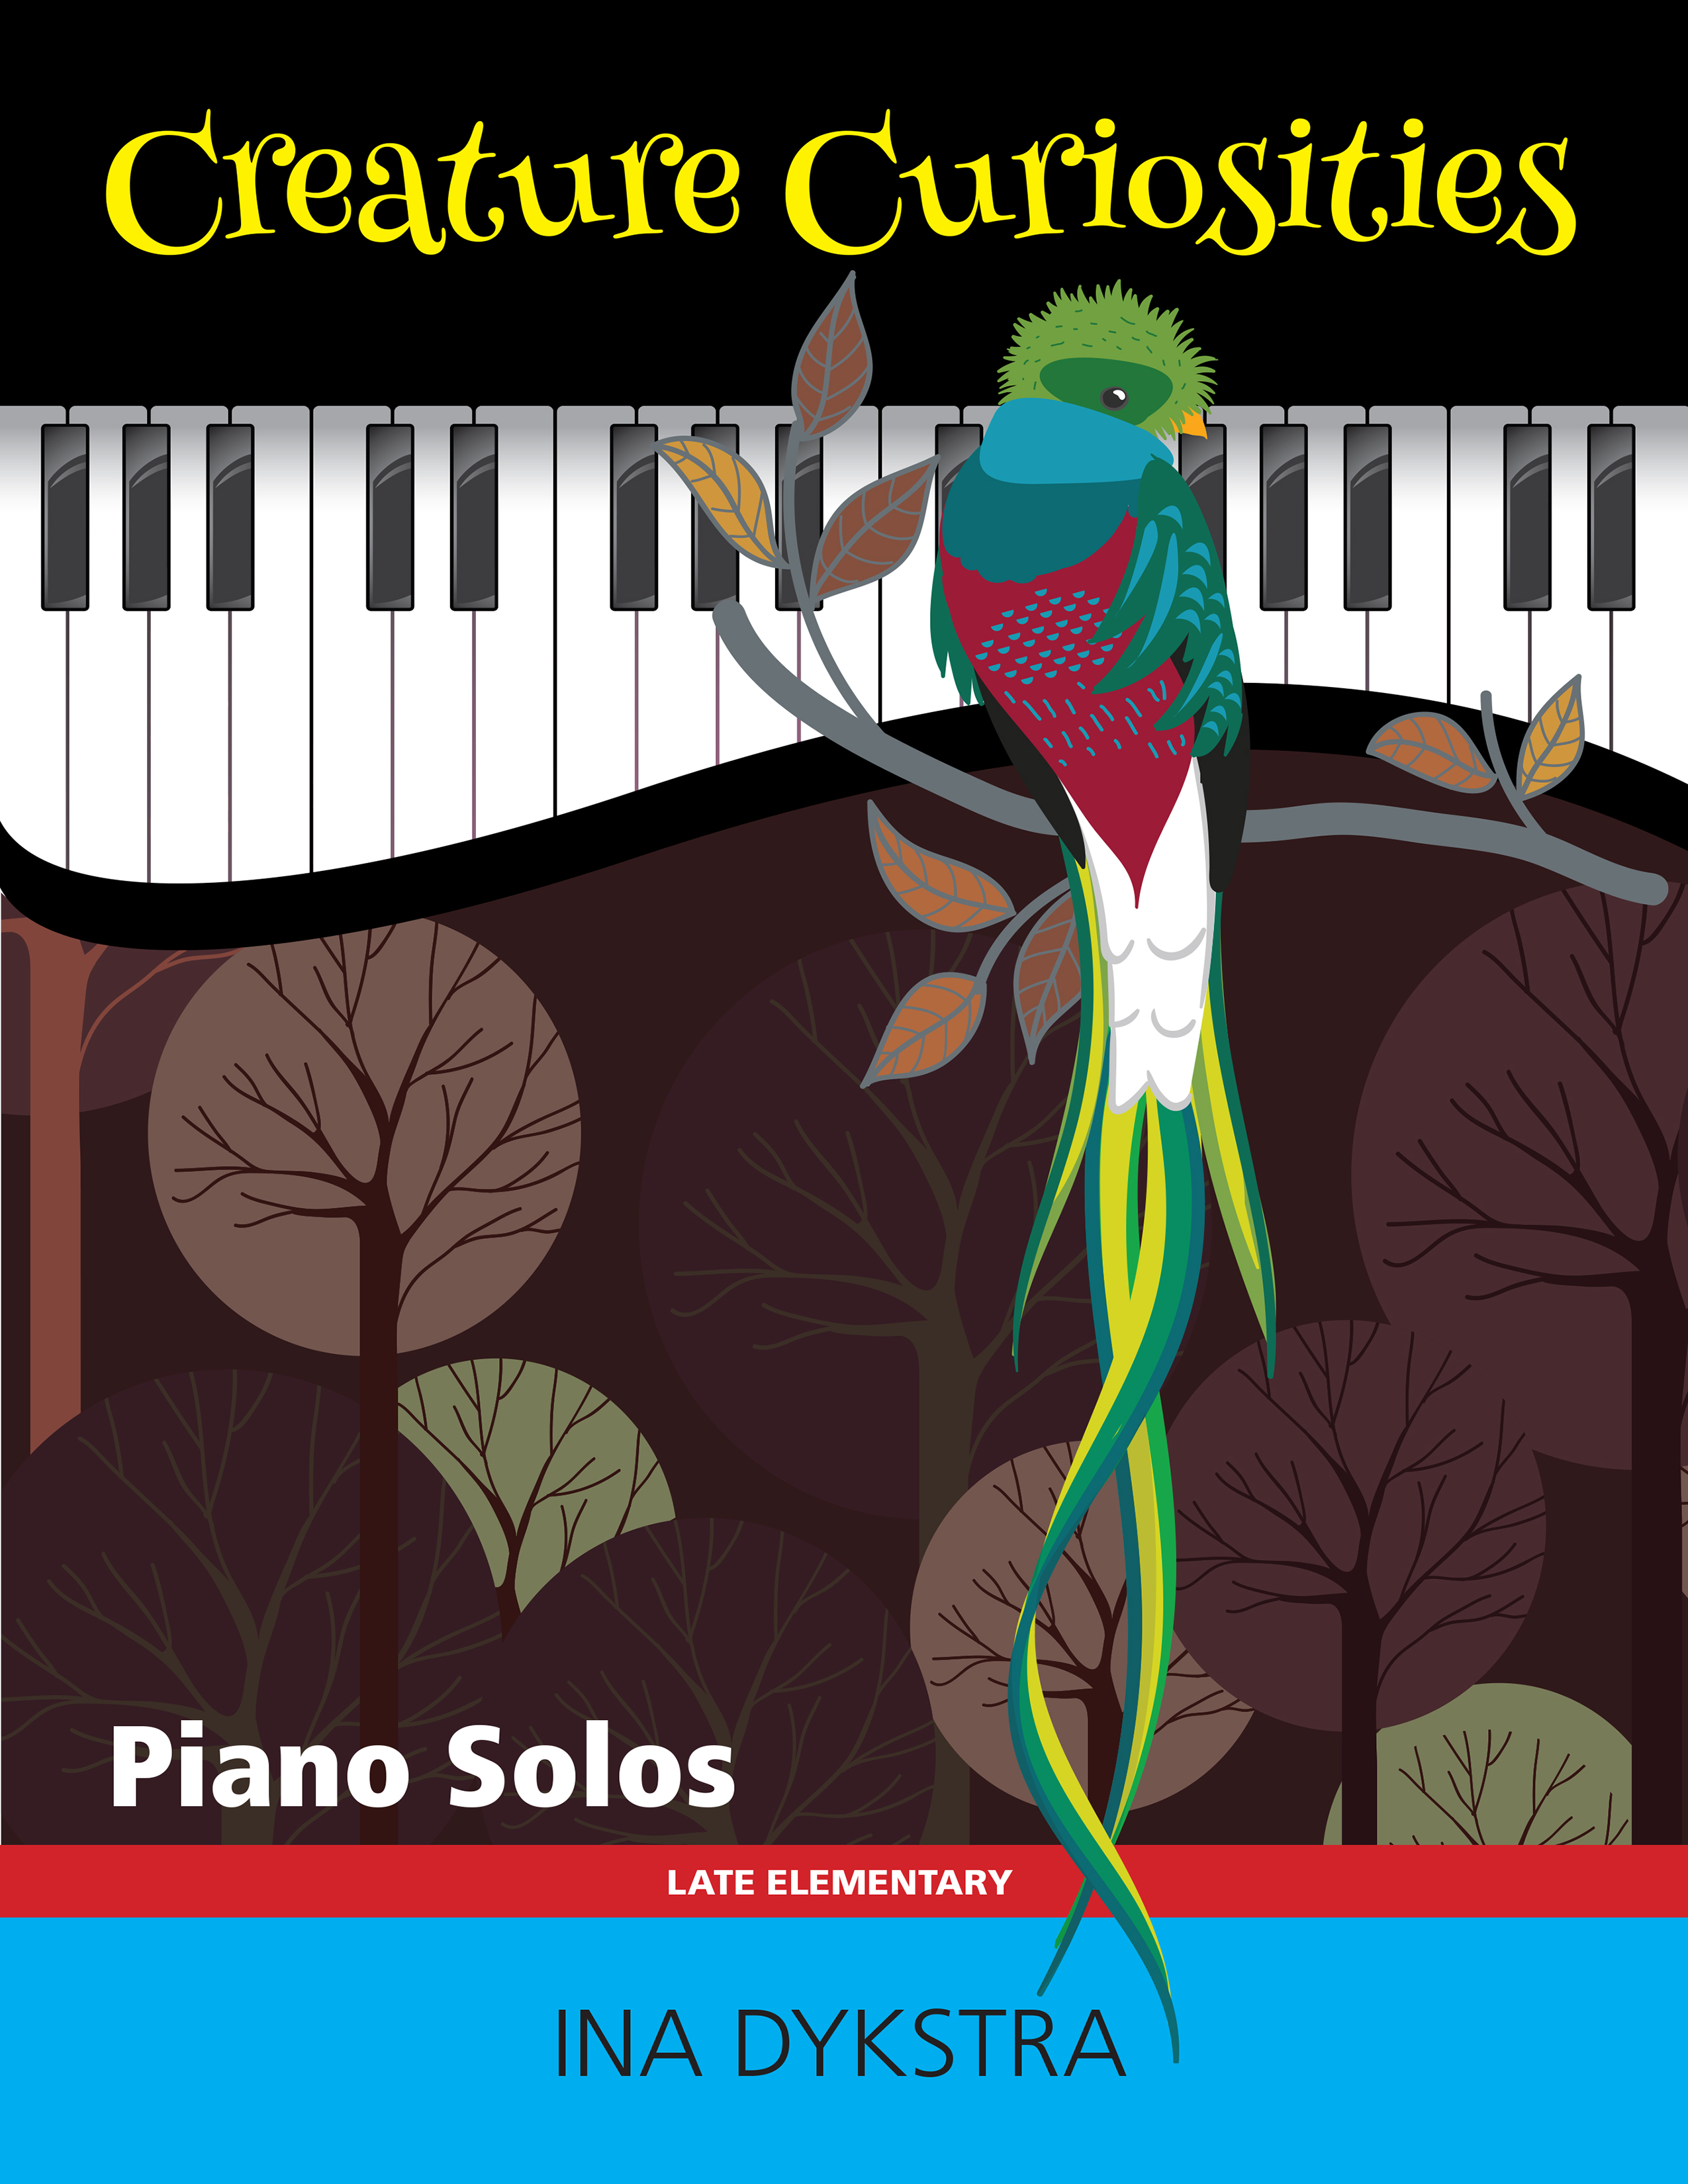 Creature Curiosities: Late Elementary Piano Solos by Ina Dykstra